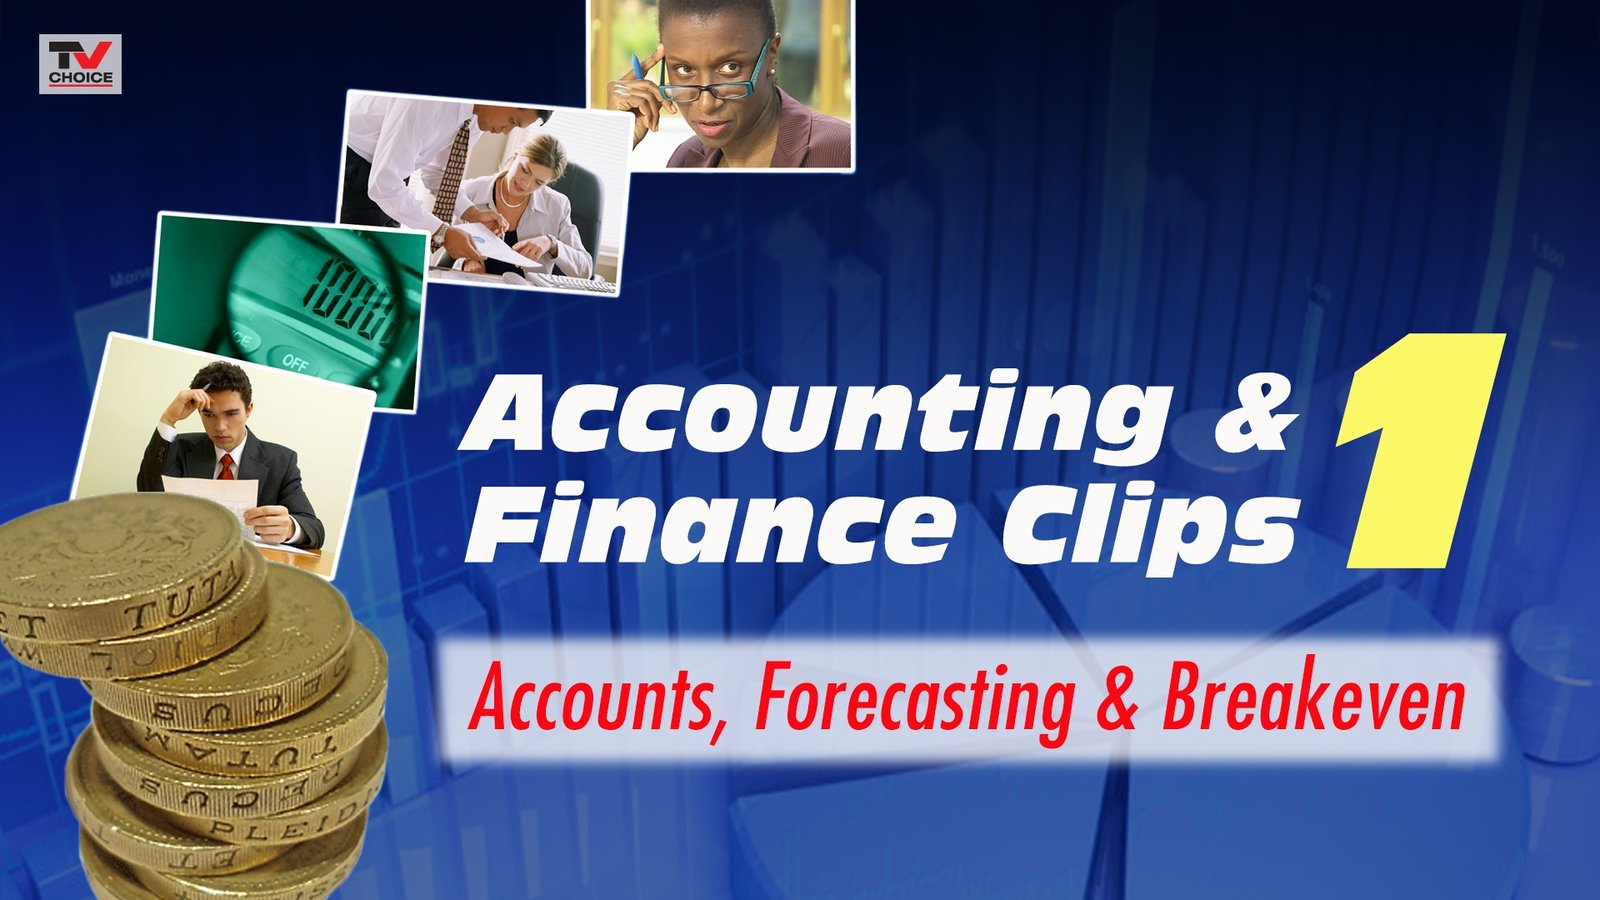 Accounting and Finance Clips 1: Accounts, Forecasting and Breakeven